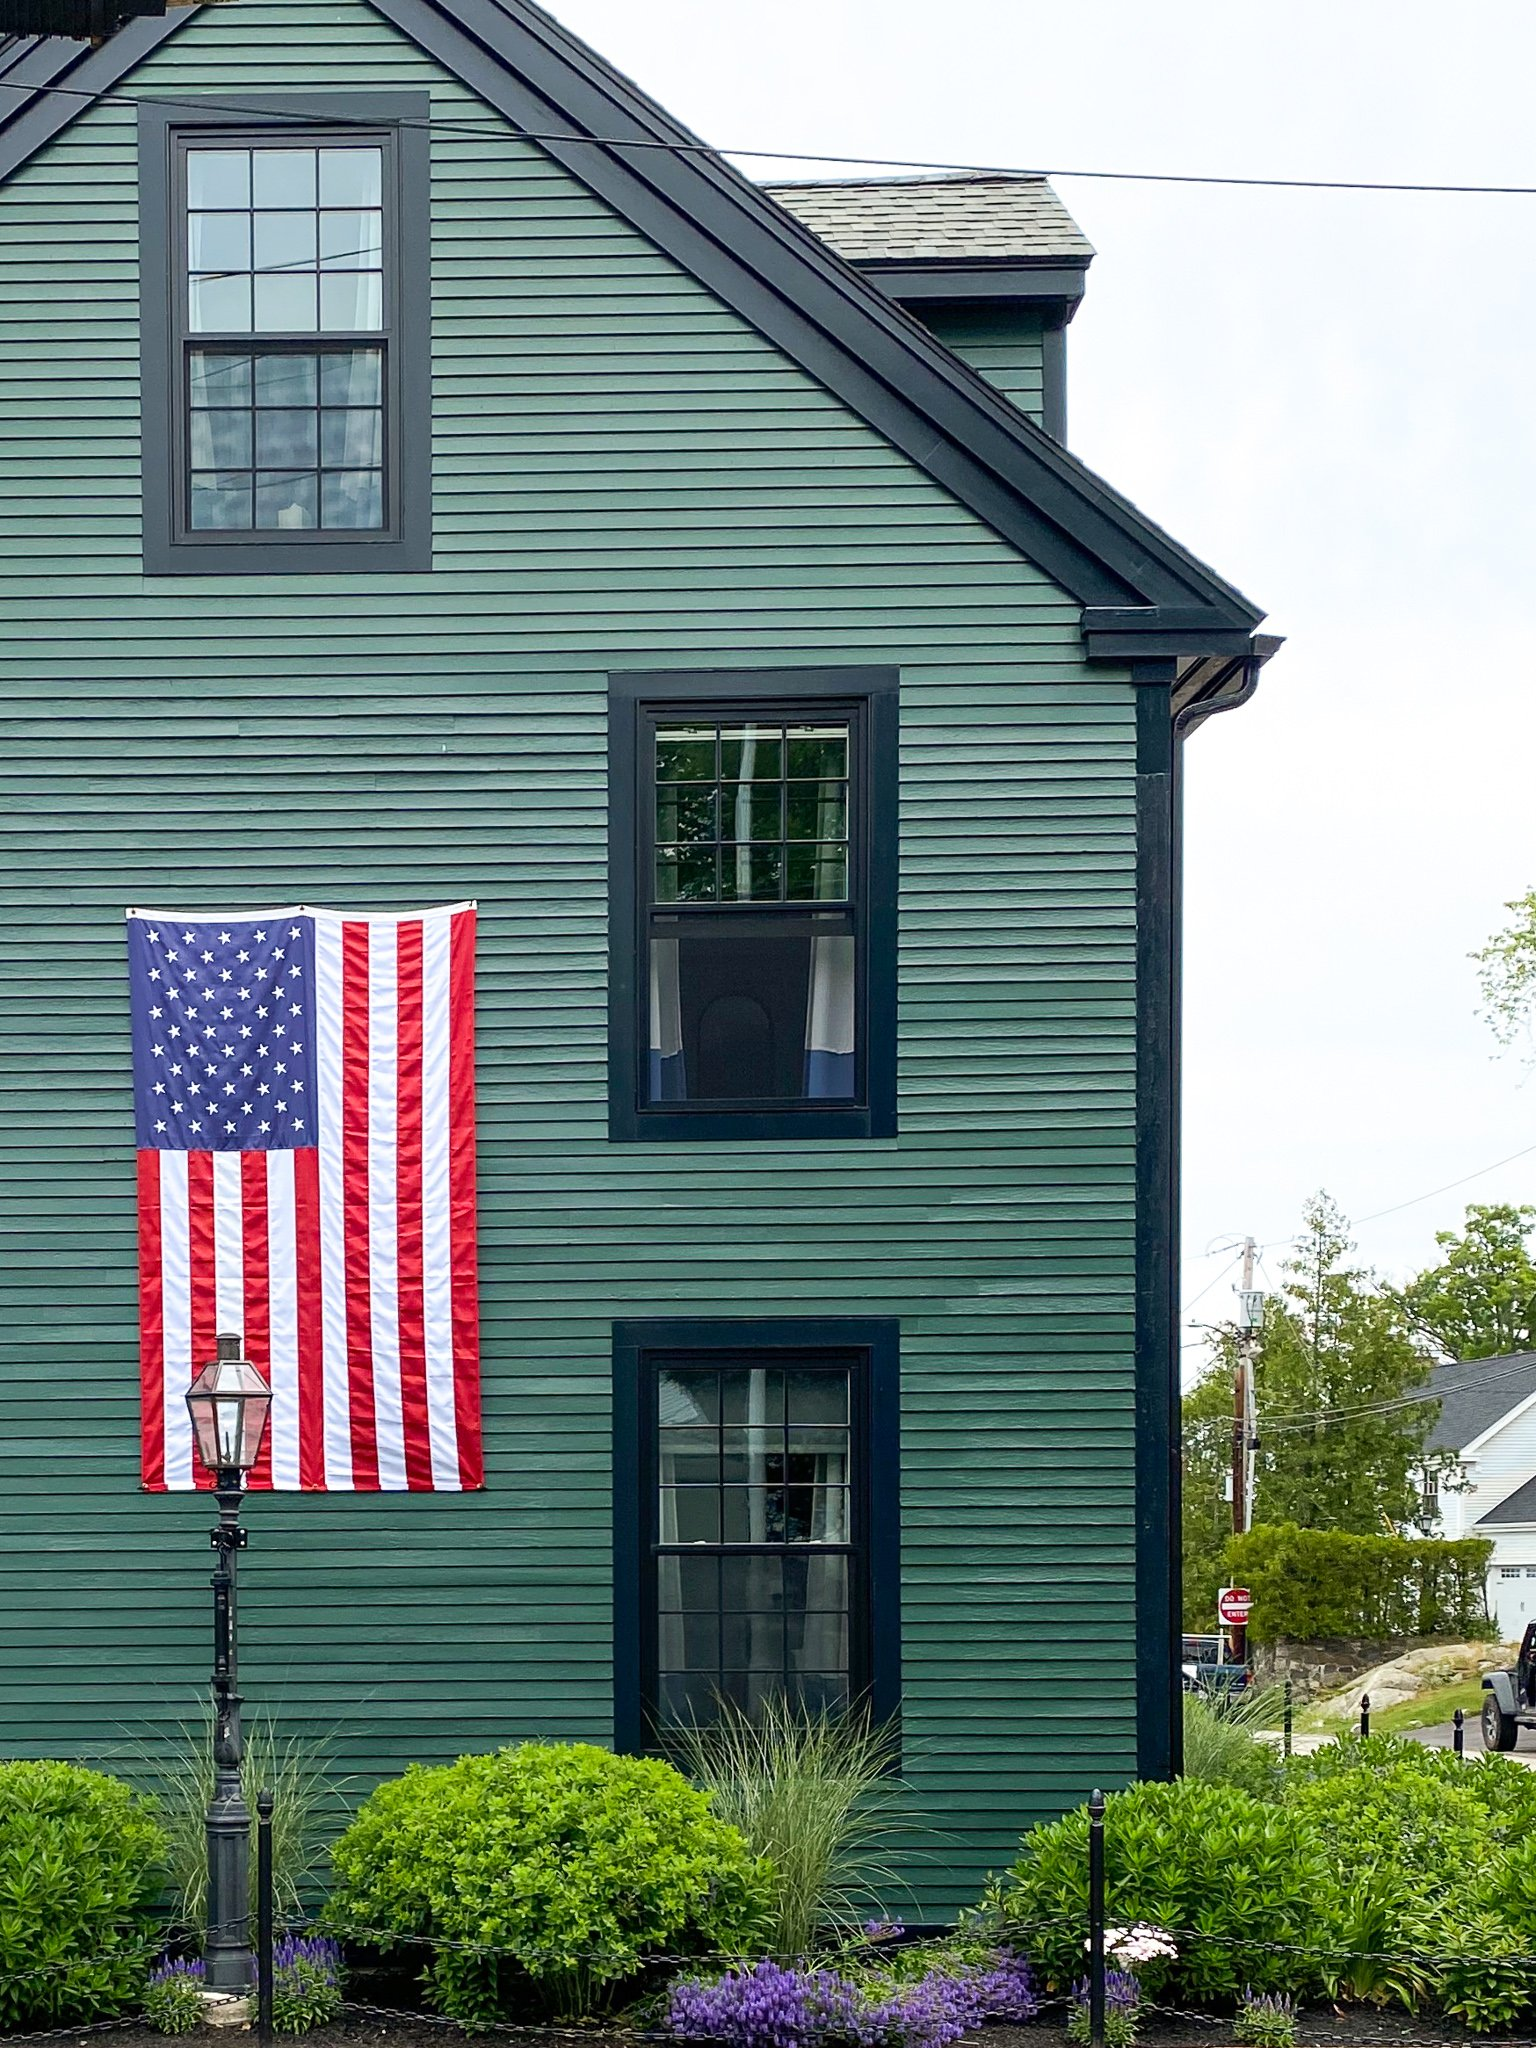 Great Island Inn with an American flag in New Castle, NH